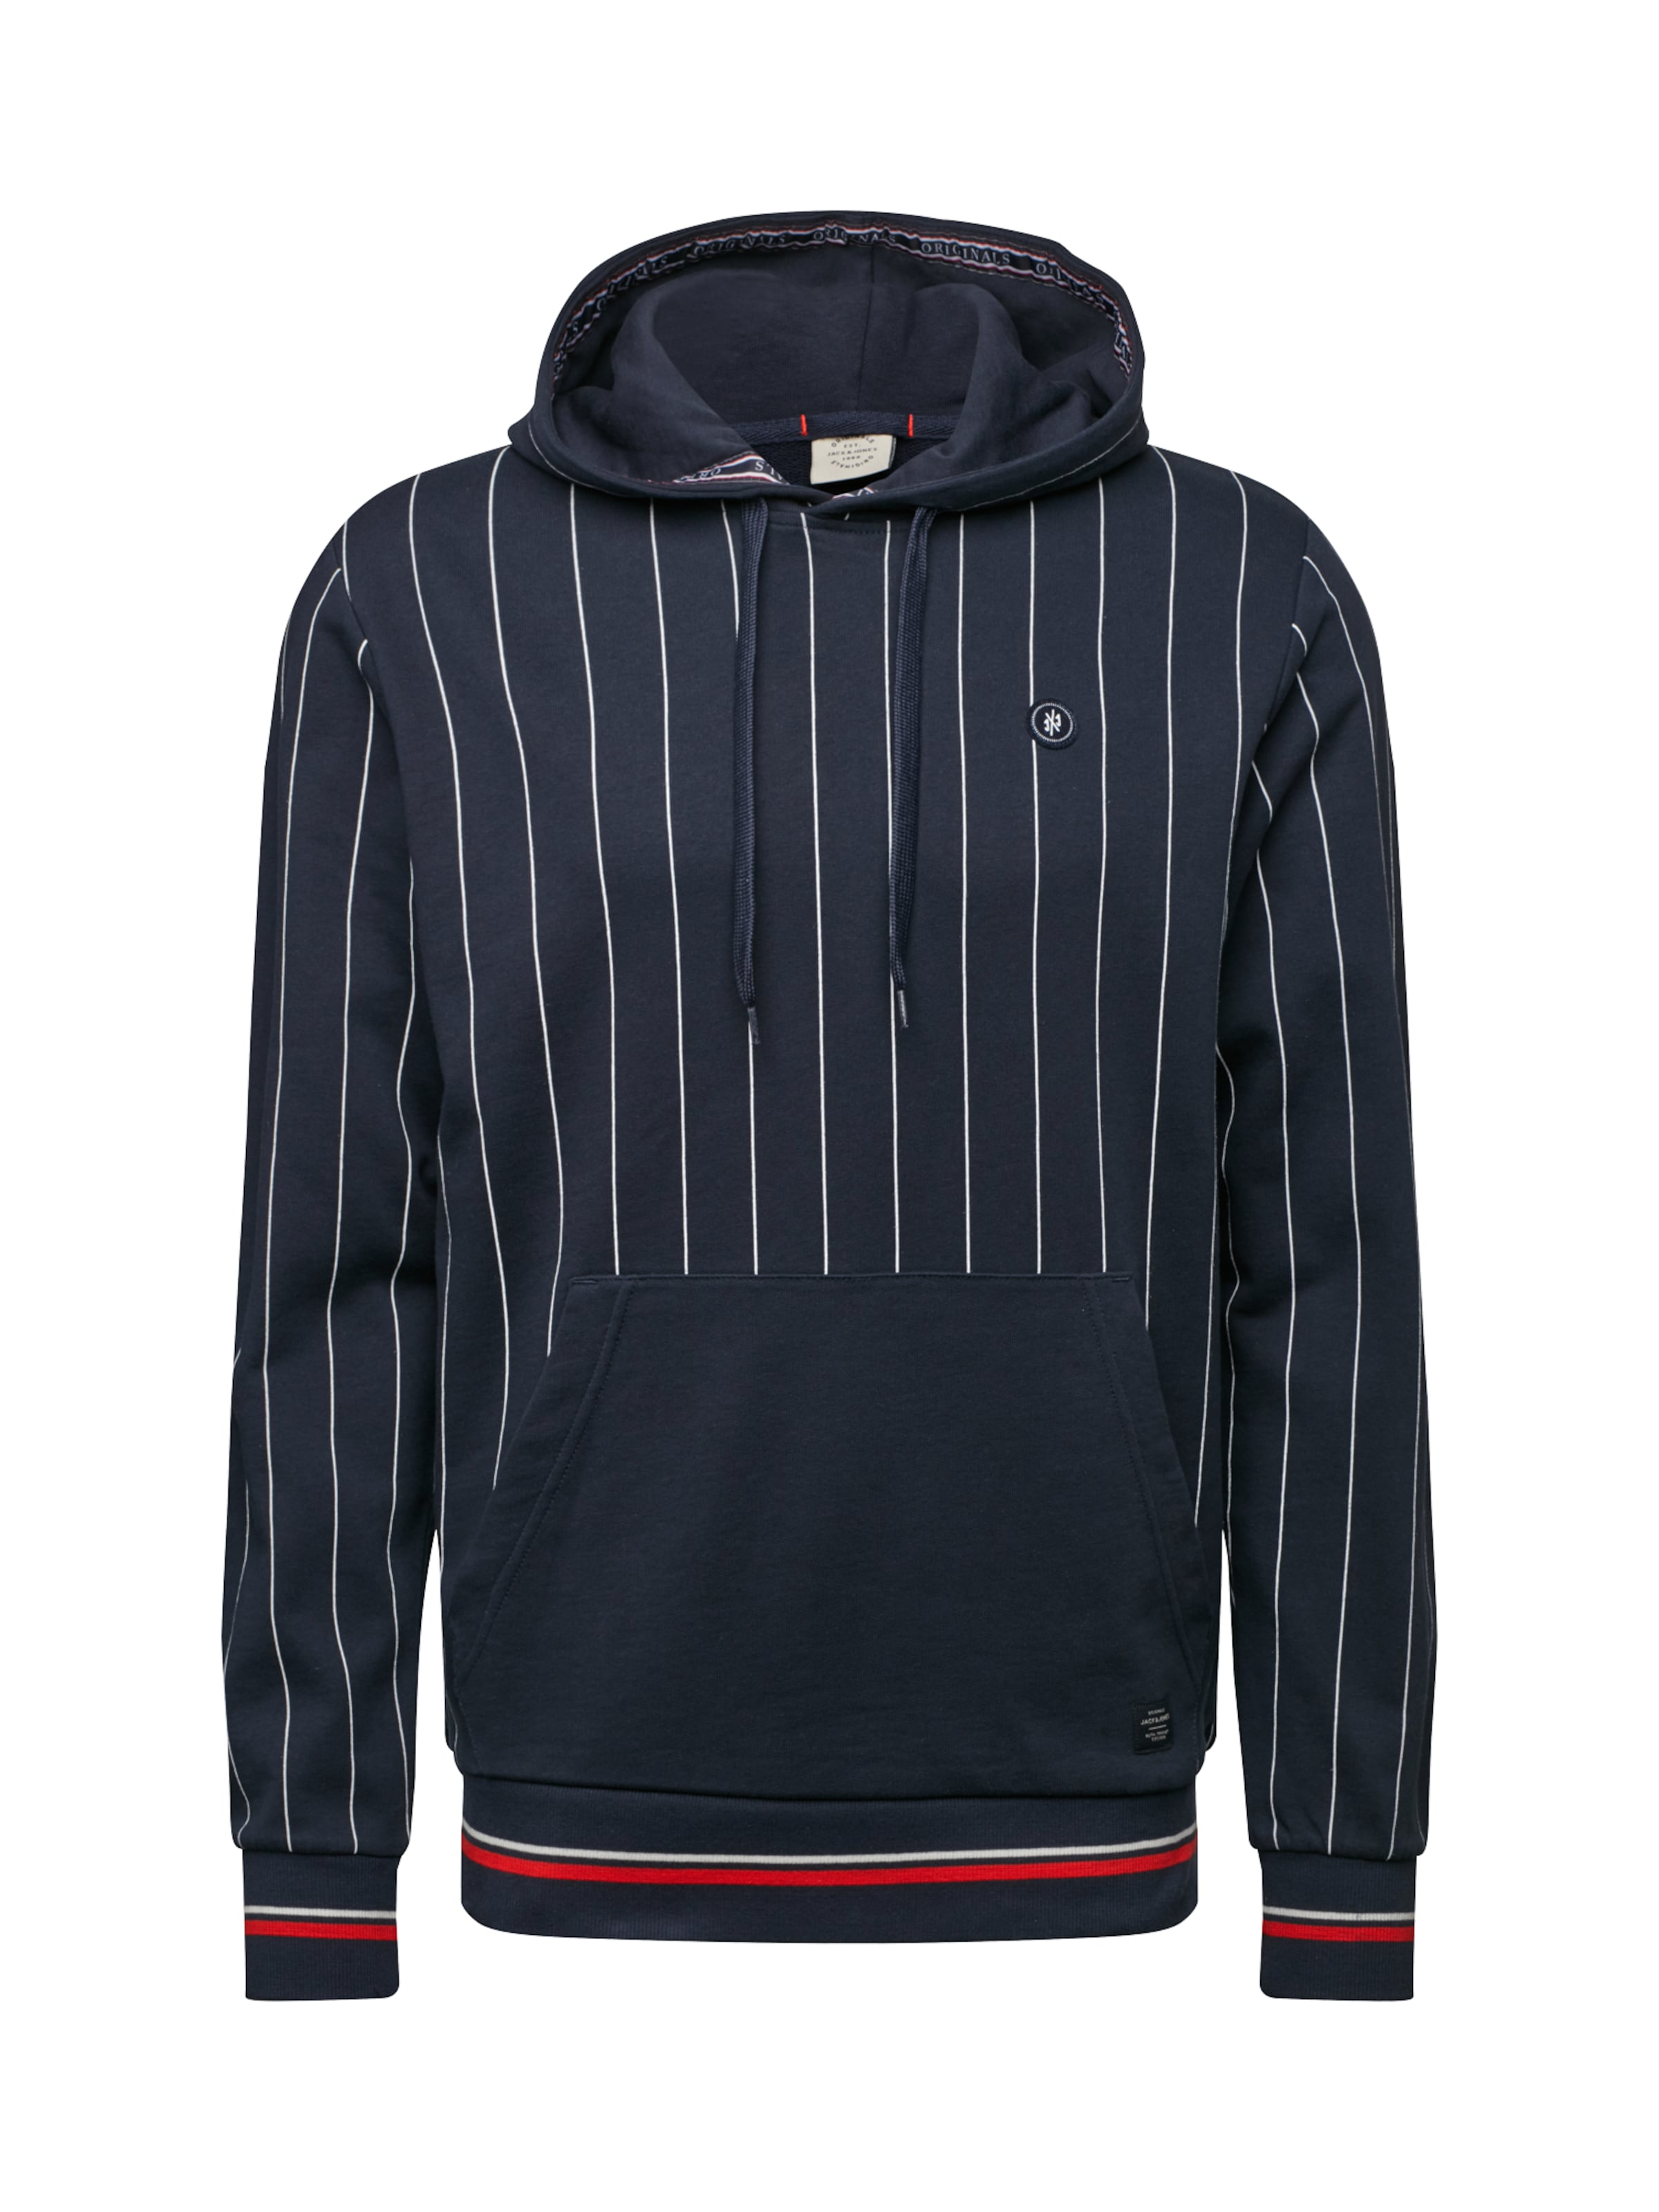 'pinstripe' Jones Jackamp; Bleu FoncéBlanc En Sweat shirt 3AL5Rjq4